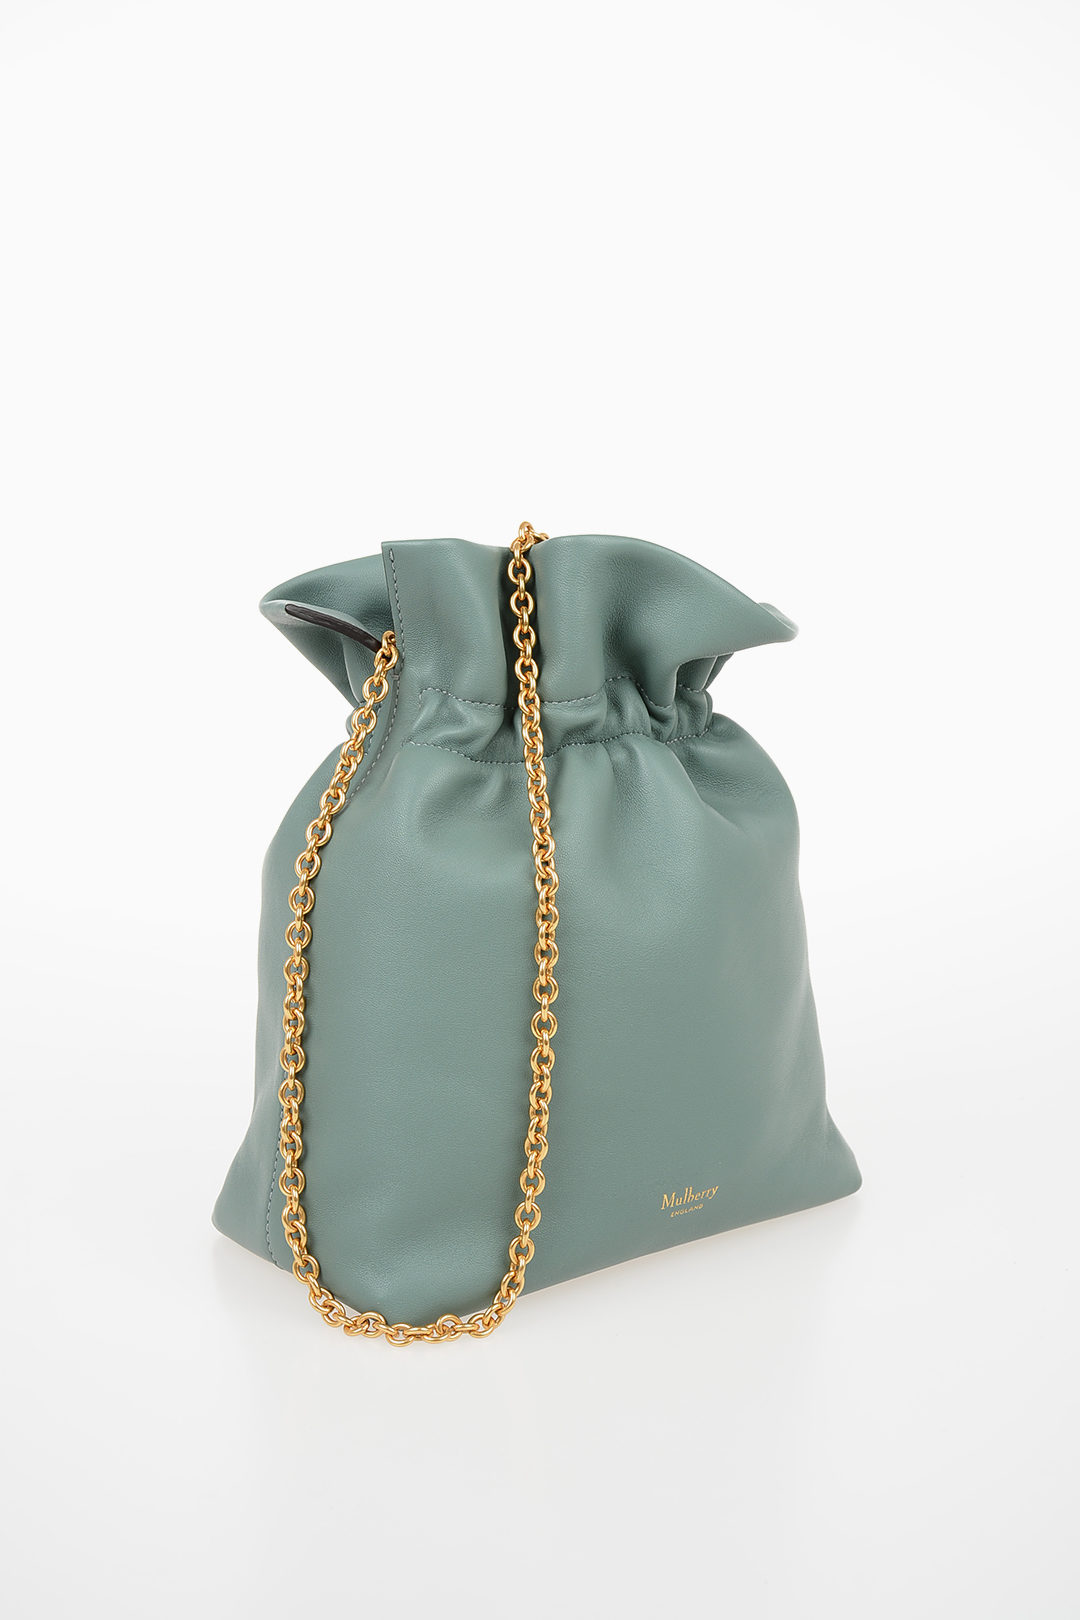 Mulberry Leather Lynton Bucket Bag